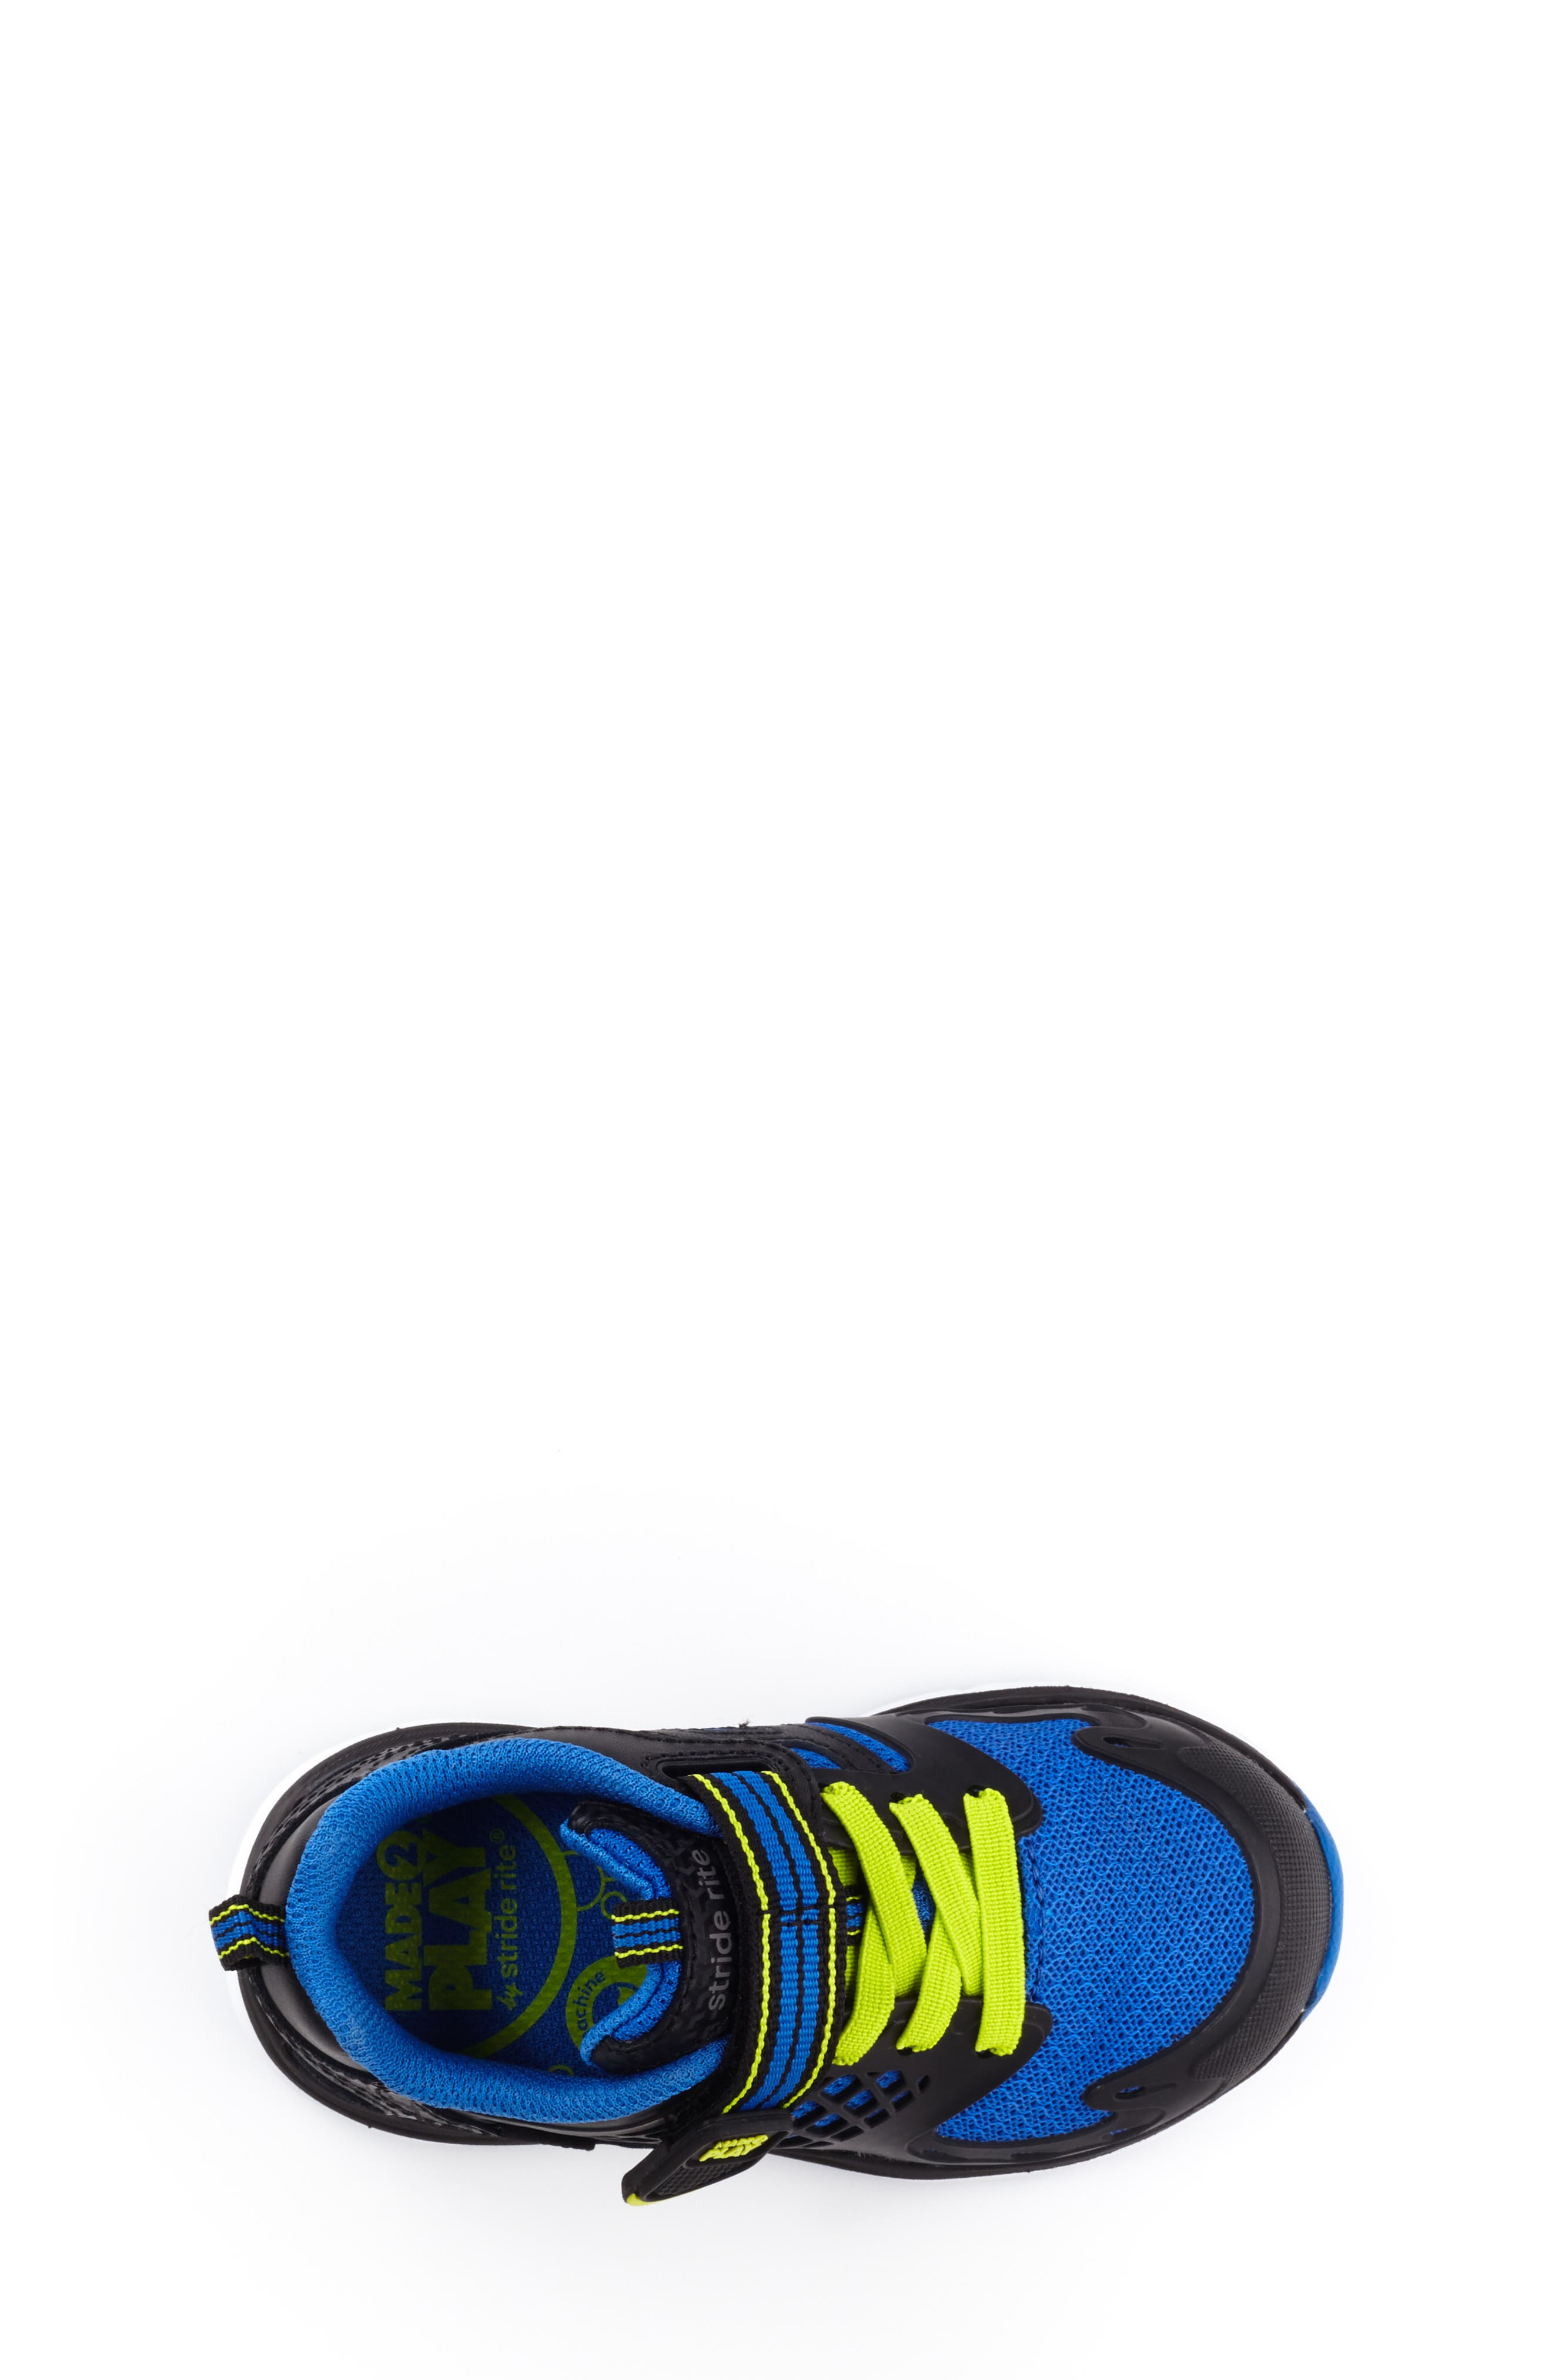 Made 2 Play Breccen Sneaker,                             Alternate thumbnail 4, color,                             BLACK/ LIME